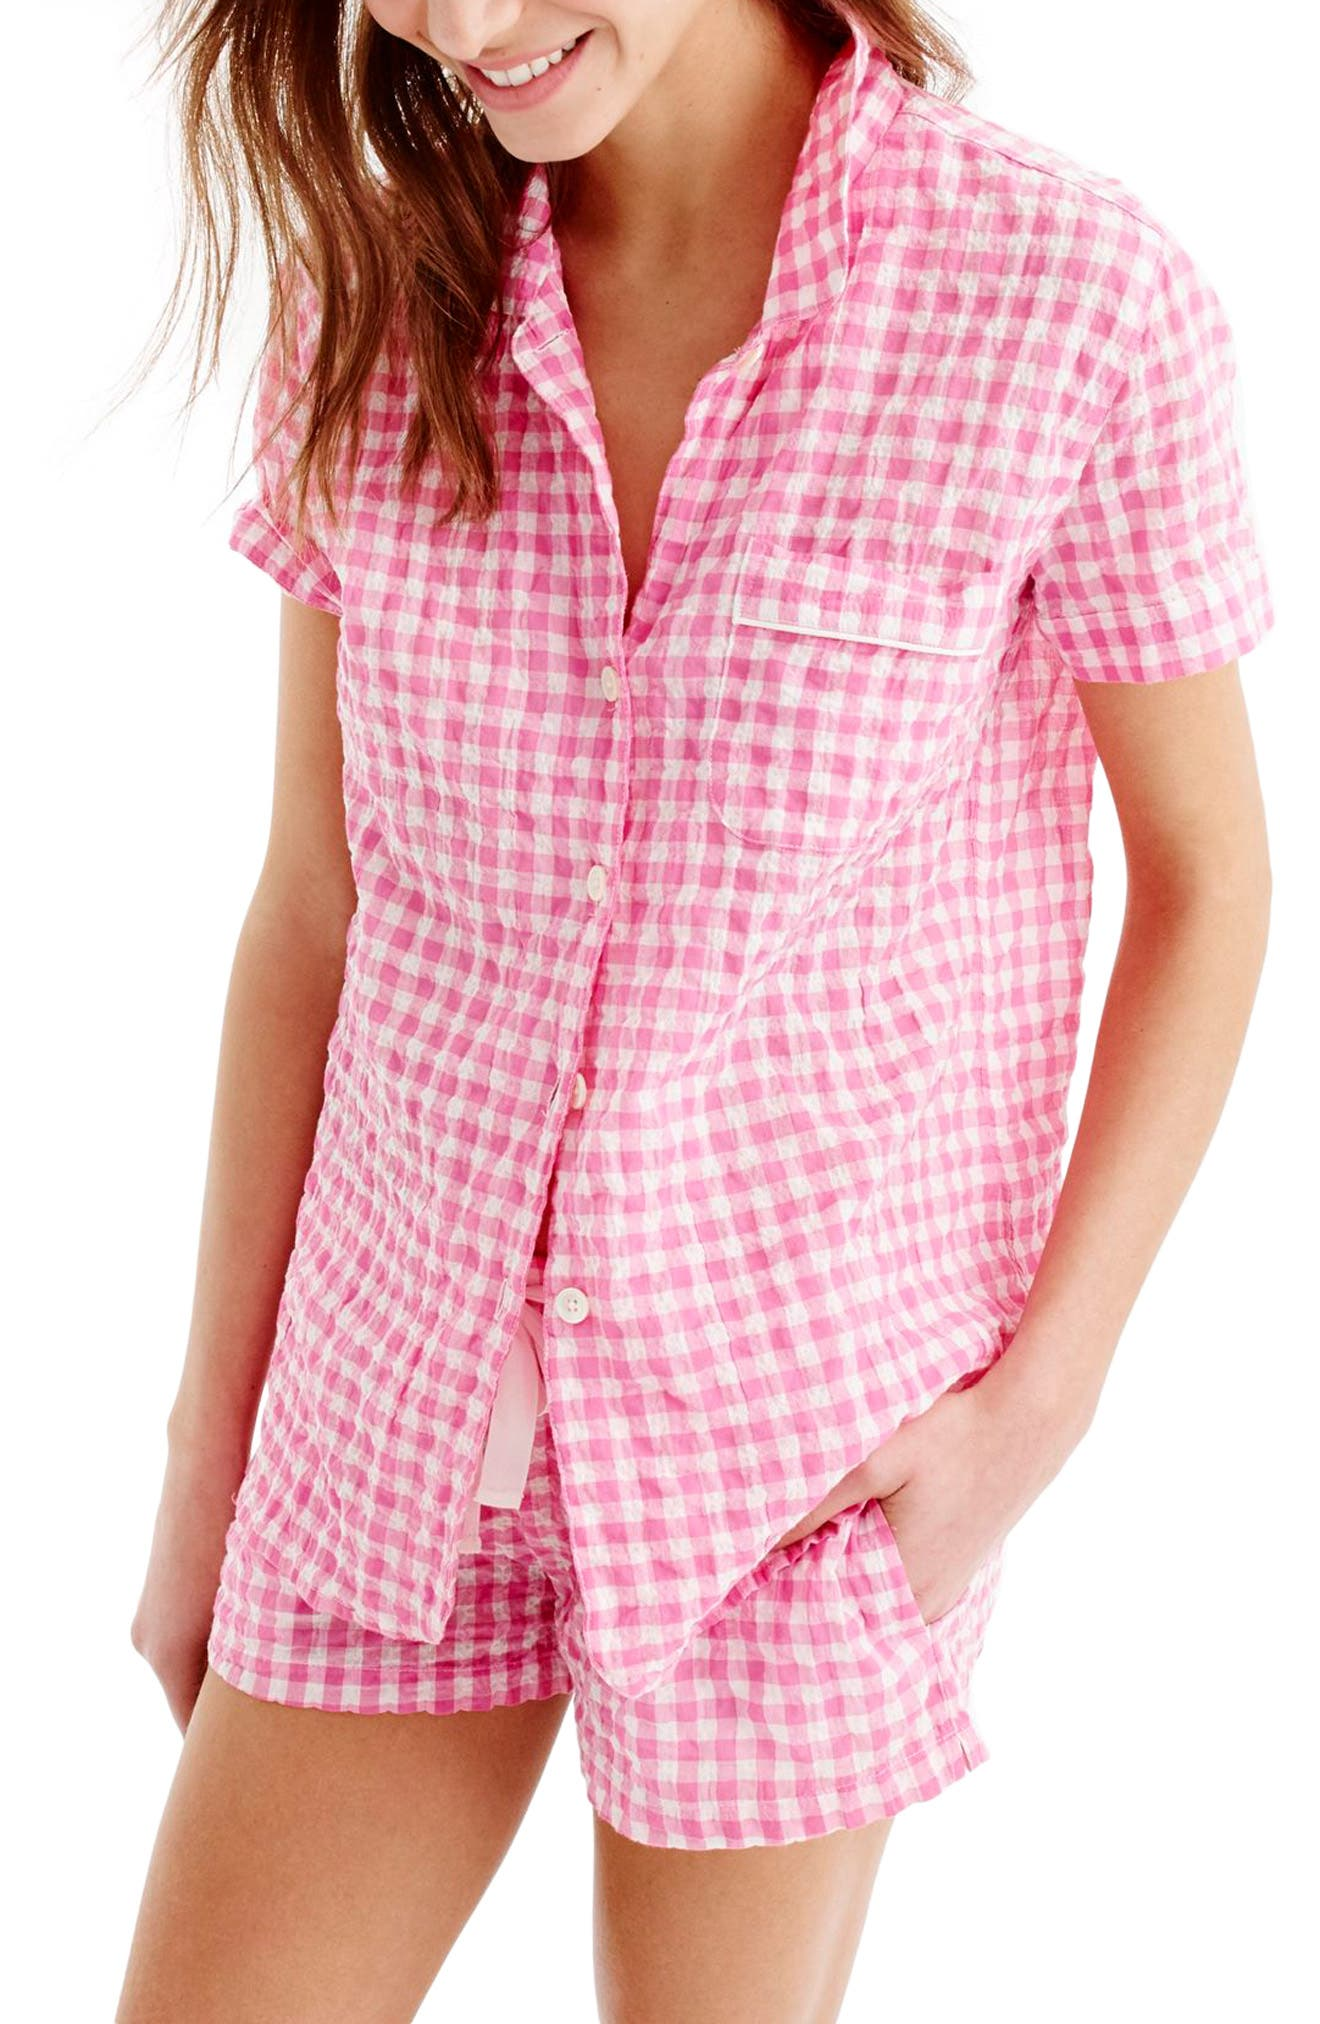 J.Crew Gingham Pajama Set